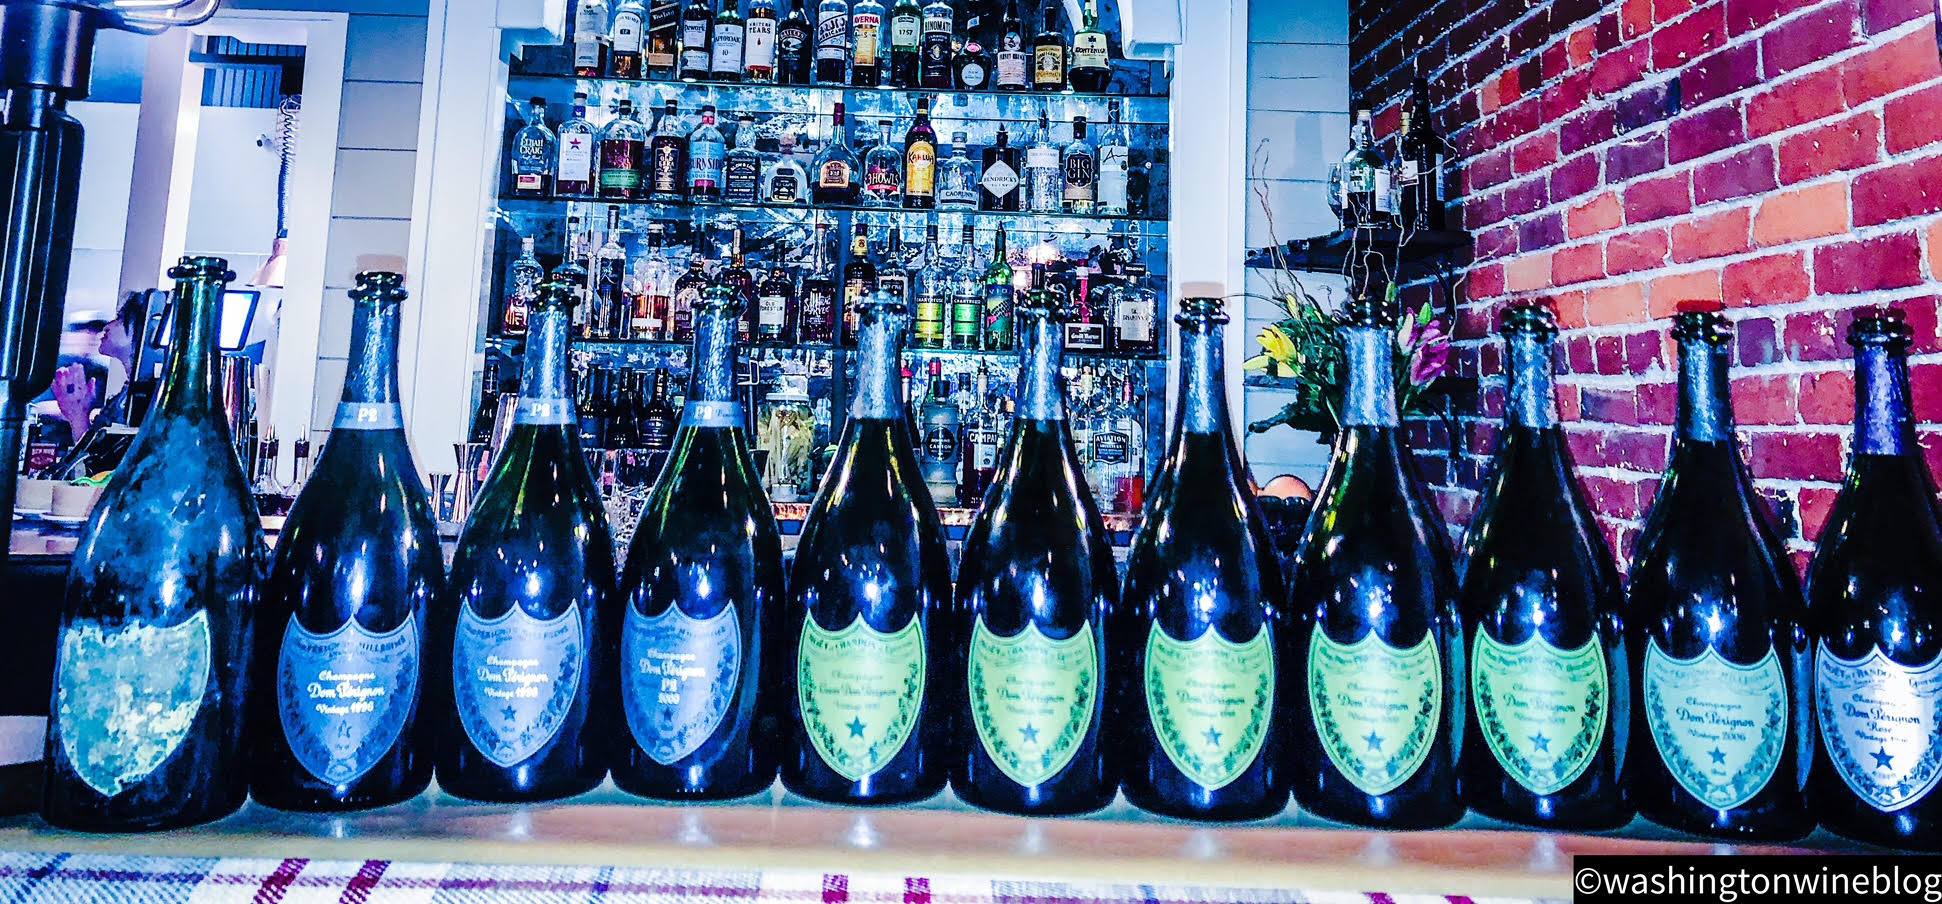 It was a magical tasting with a few of my friends as we sampled some sensational older bottles of Dom Pérignon.